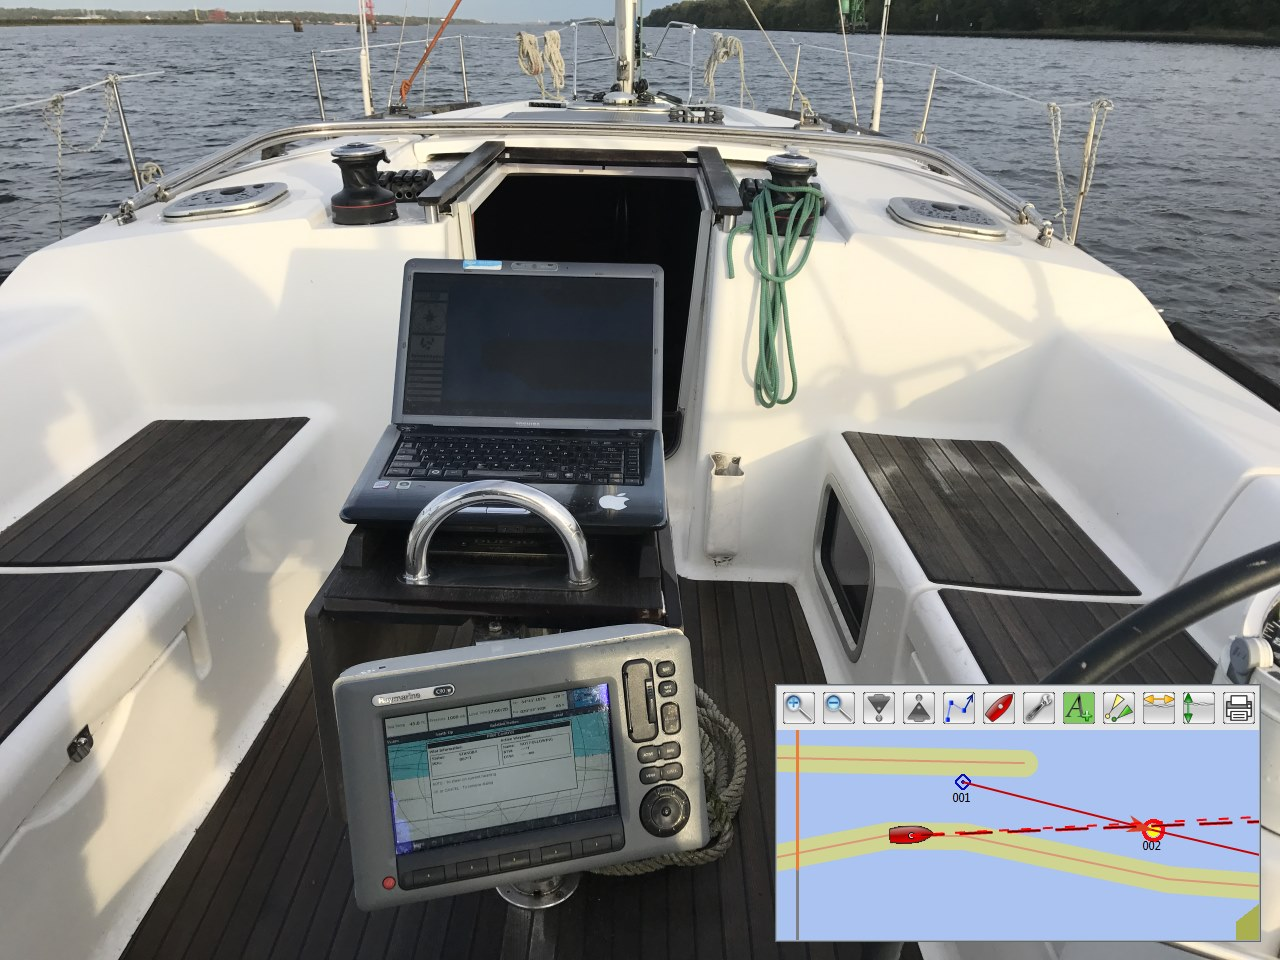 Yacht Devices News: Control of Raymarine autopilots was